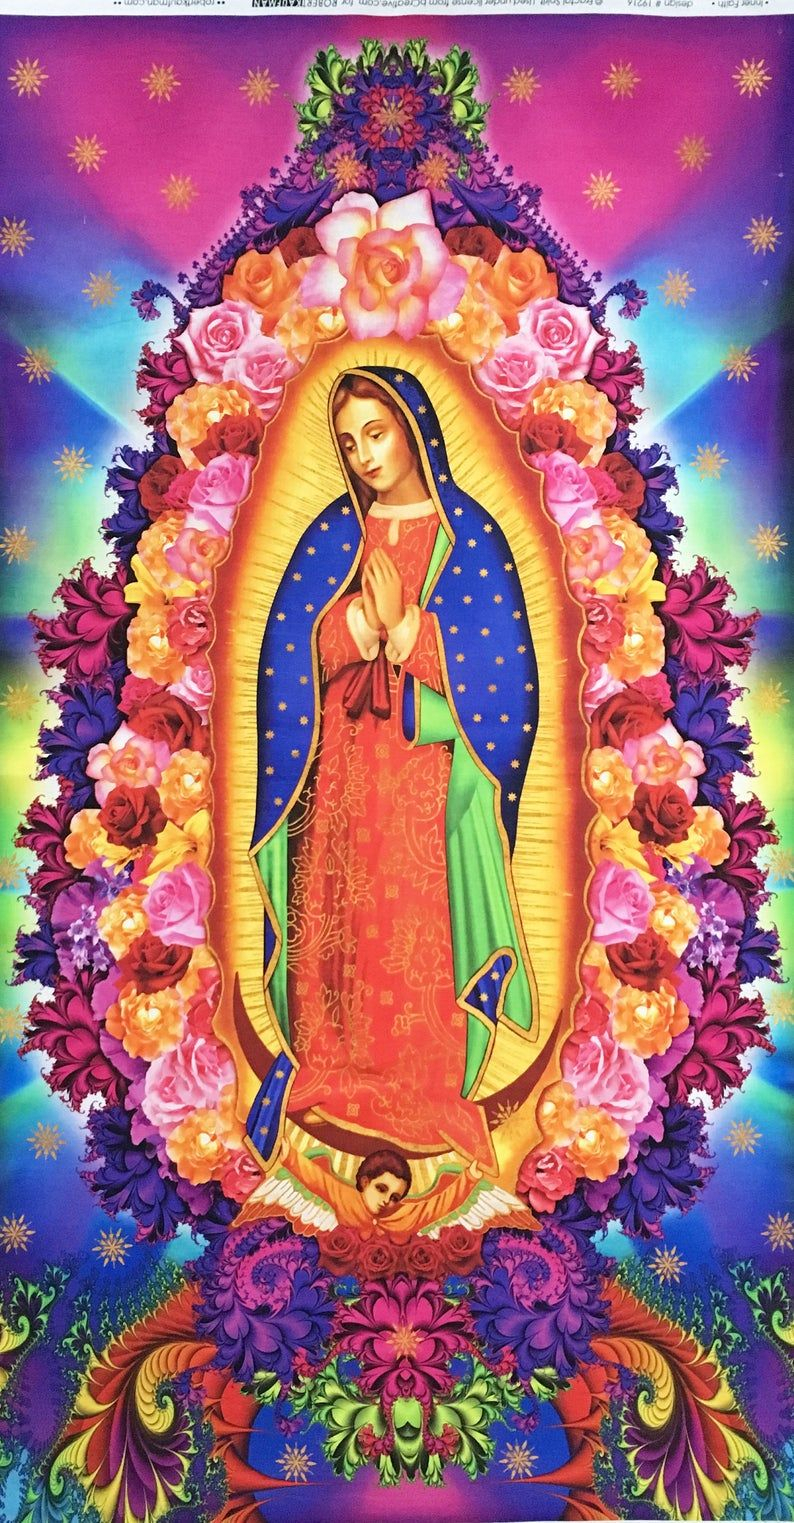 Virgin Lady Of Guadalupe Grand Panneau De Tissu Nuestra Intended For Most Up To Date Blended Fabric Our Lady Of Guadalupe Wall Hangings (View 9 of 20)